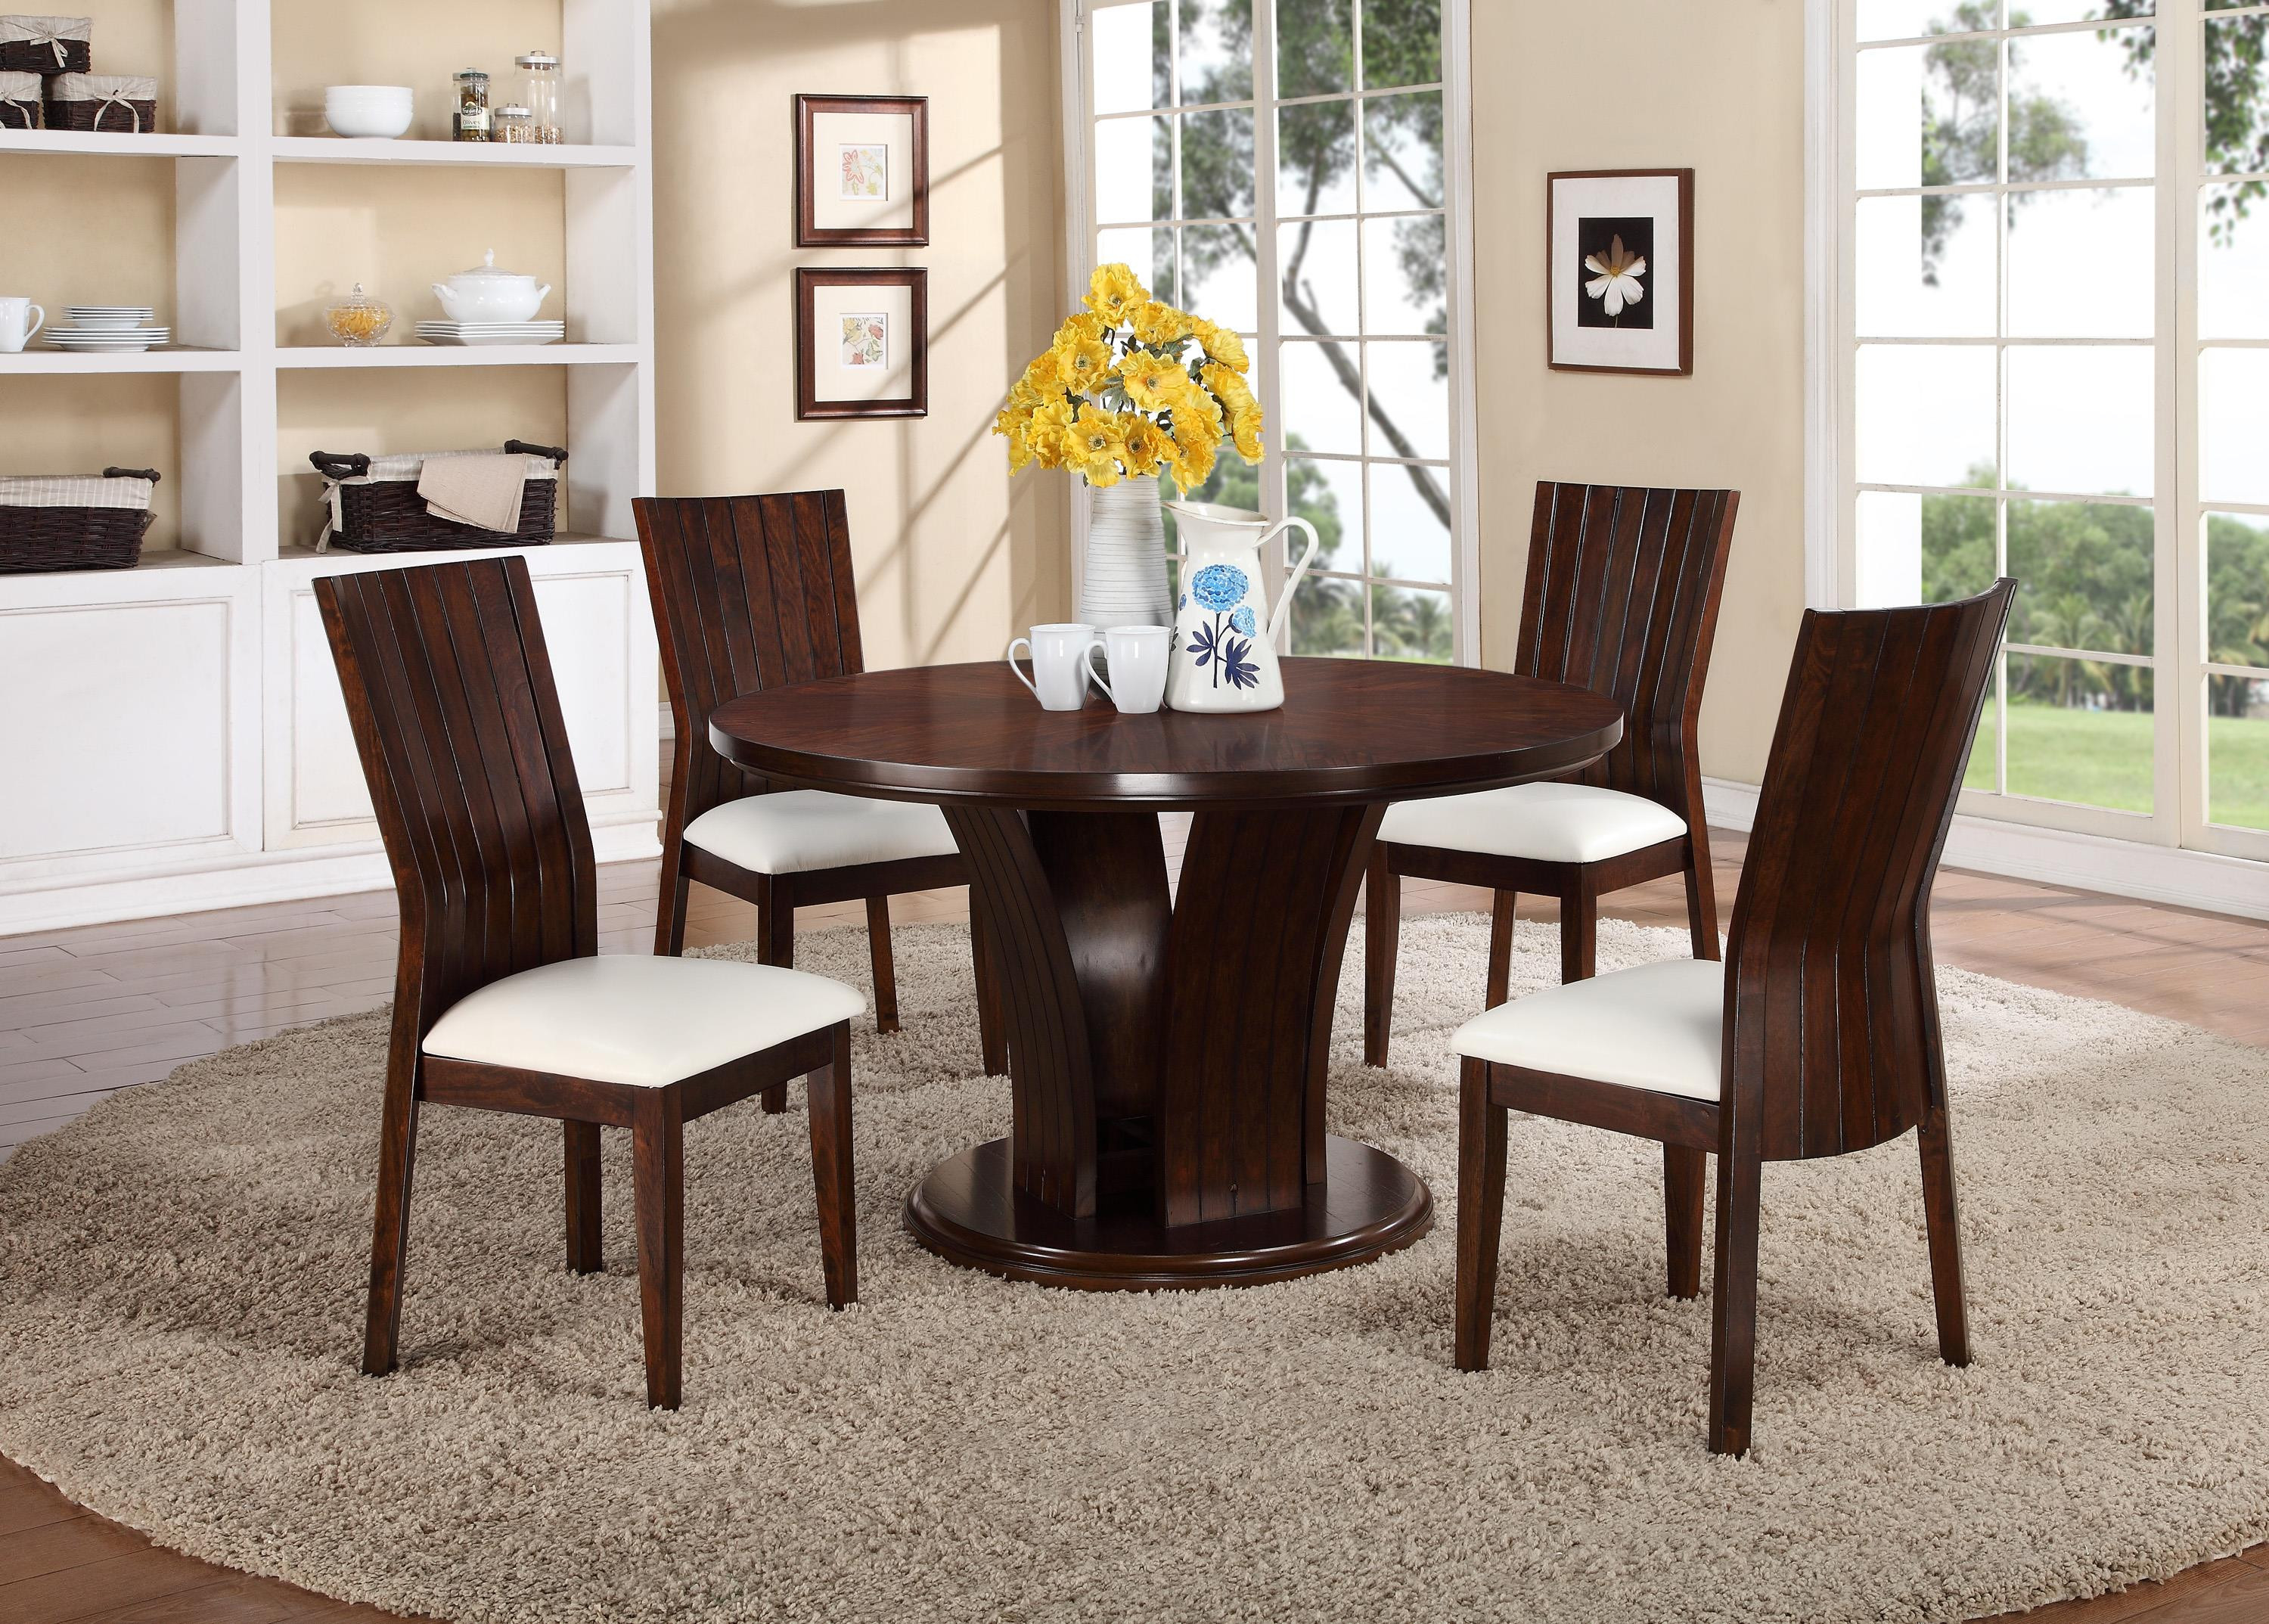 hardwood flooring stores memphis of crown mark daria 5 piece dining set with round pedestal table and with crown mark daria 5 piece dining set item number 2234s wh2234t